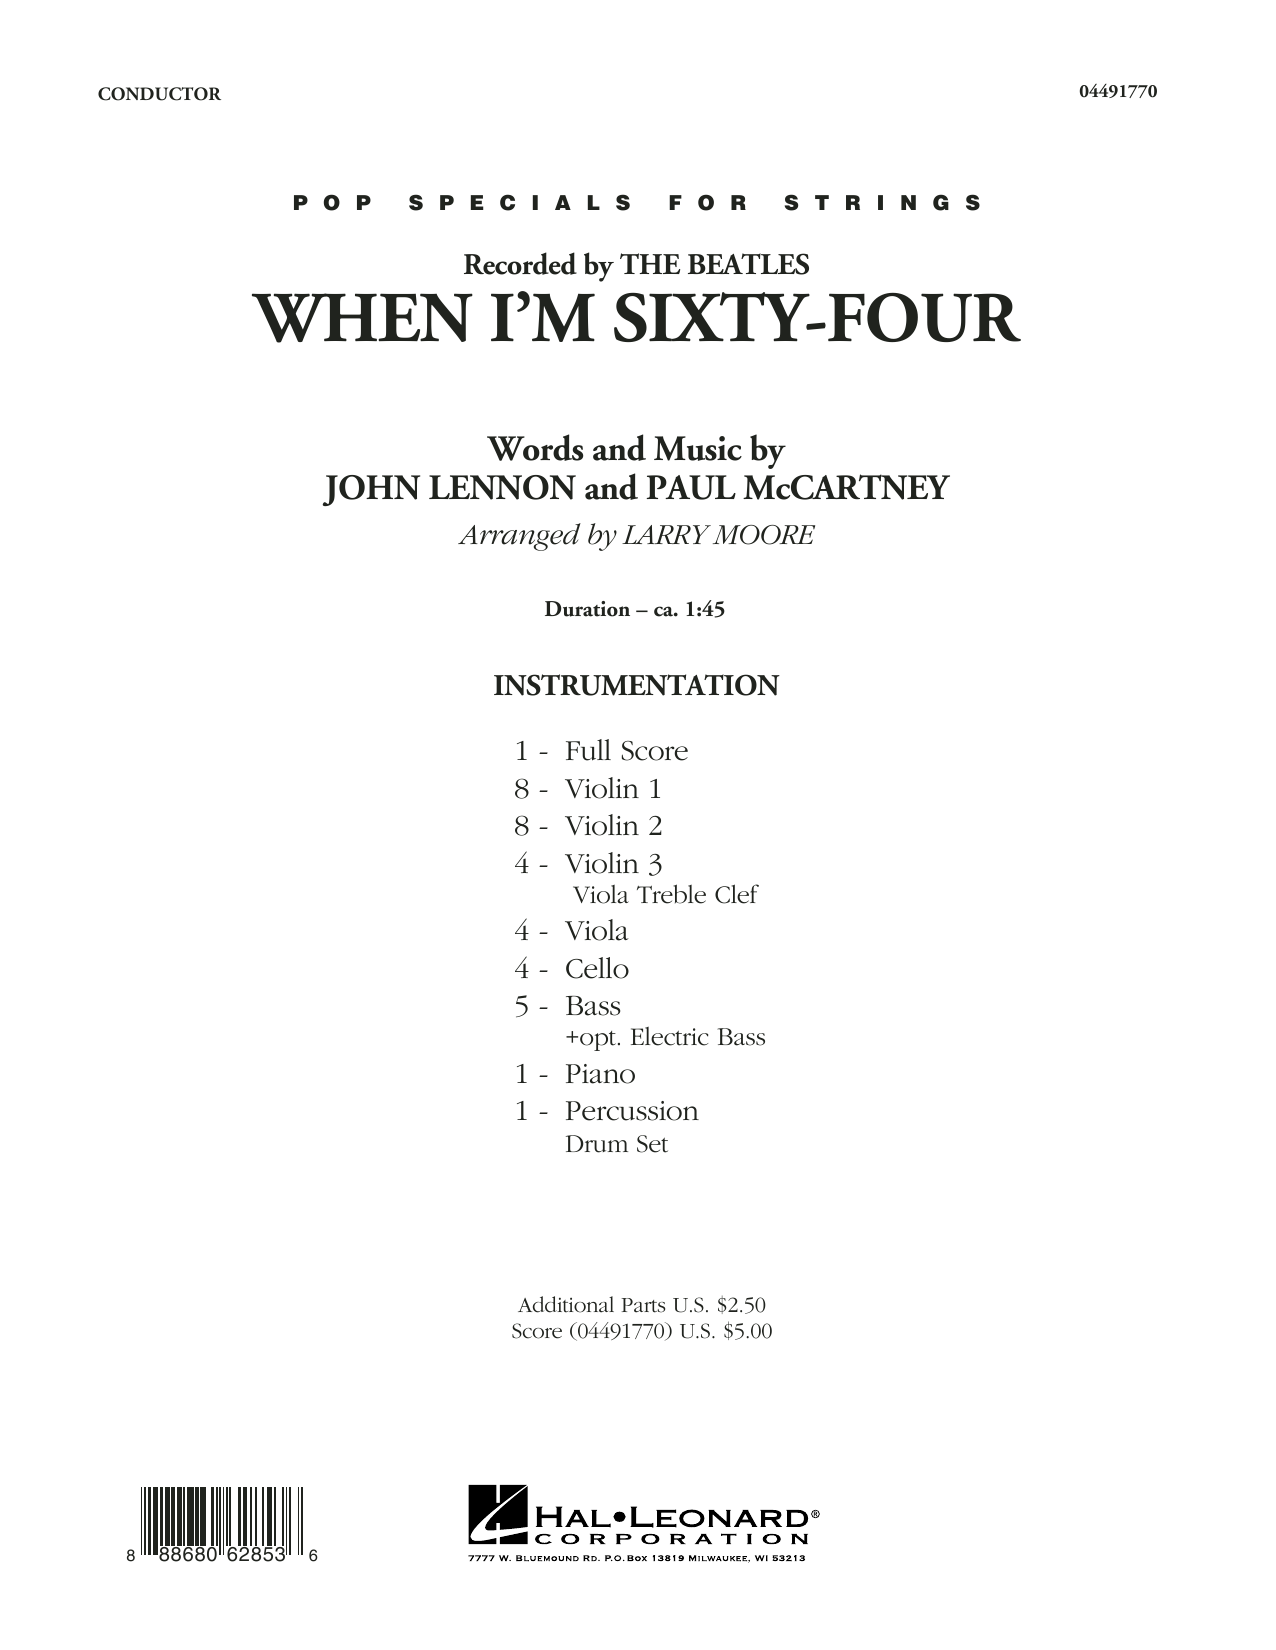 When I'm Sixty-Four (COMPLETE) sheet music for orchestra by Larry Moore, John Lennon, Paul McCartney and The Beatles. Score Image Preview.